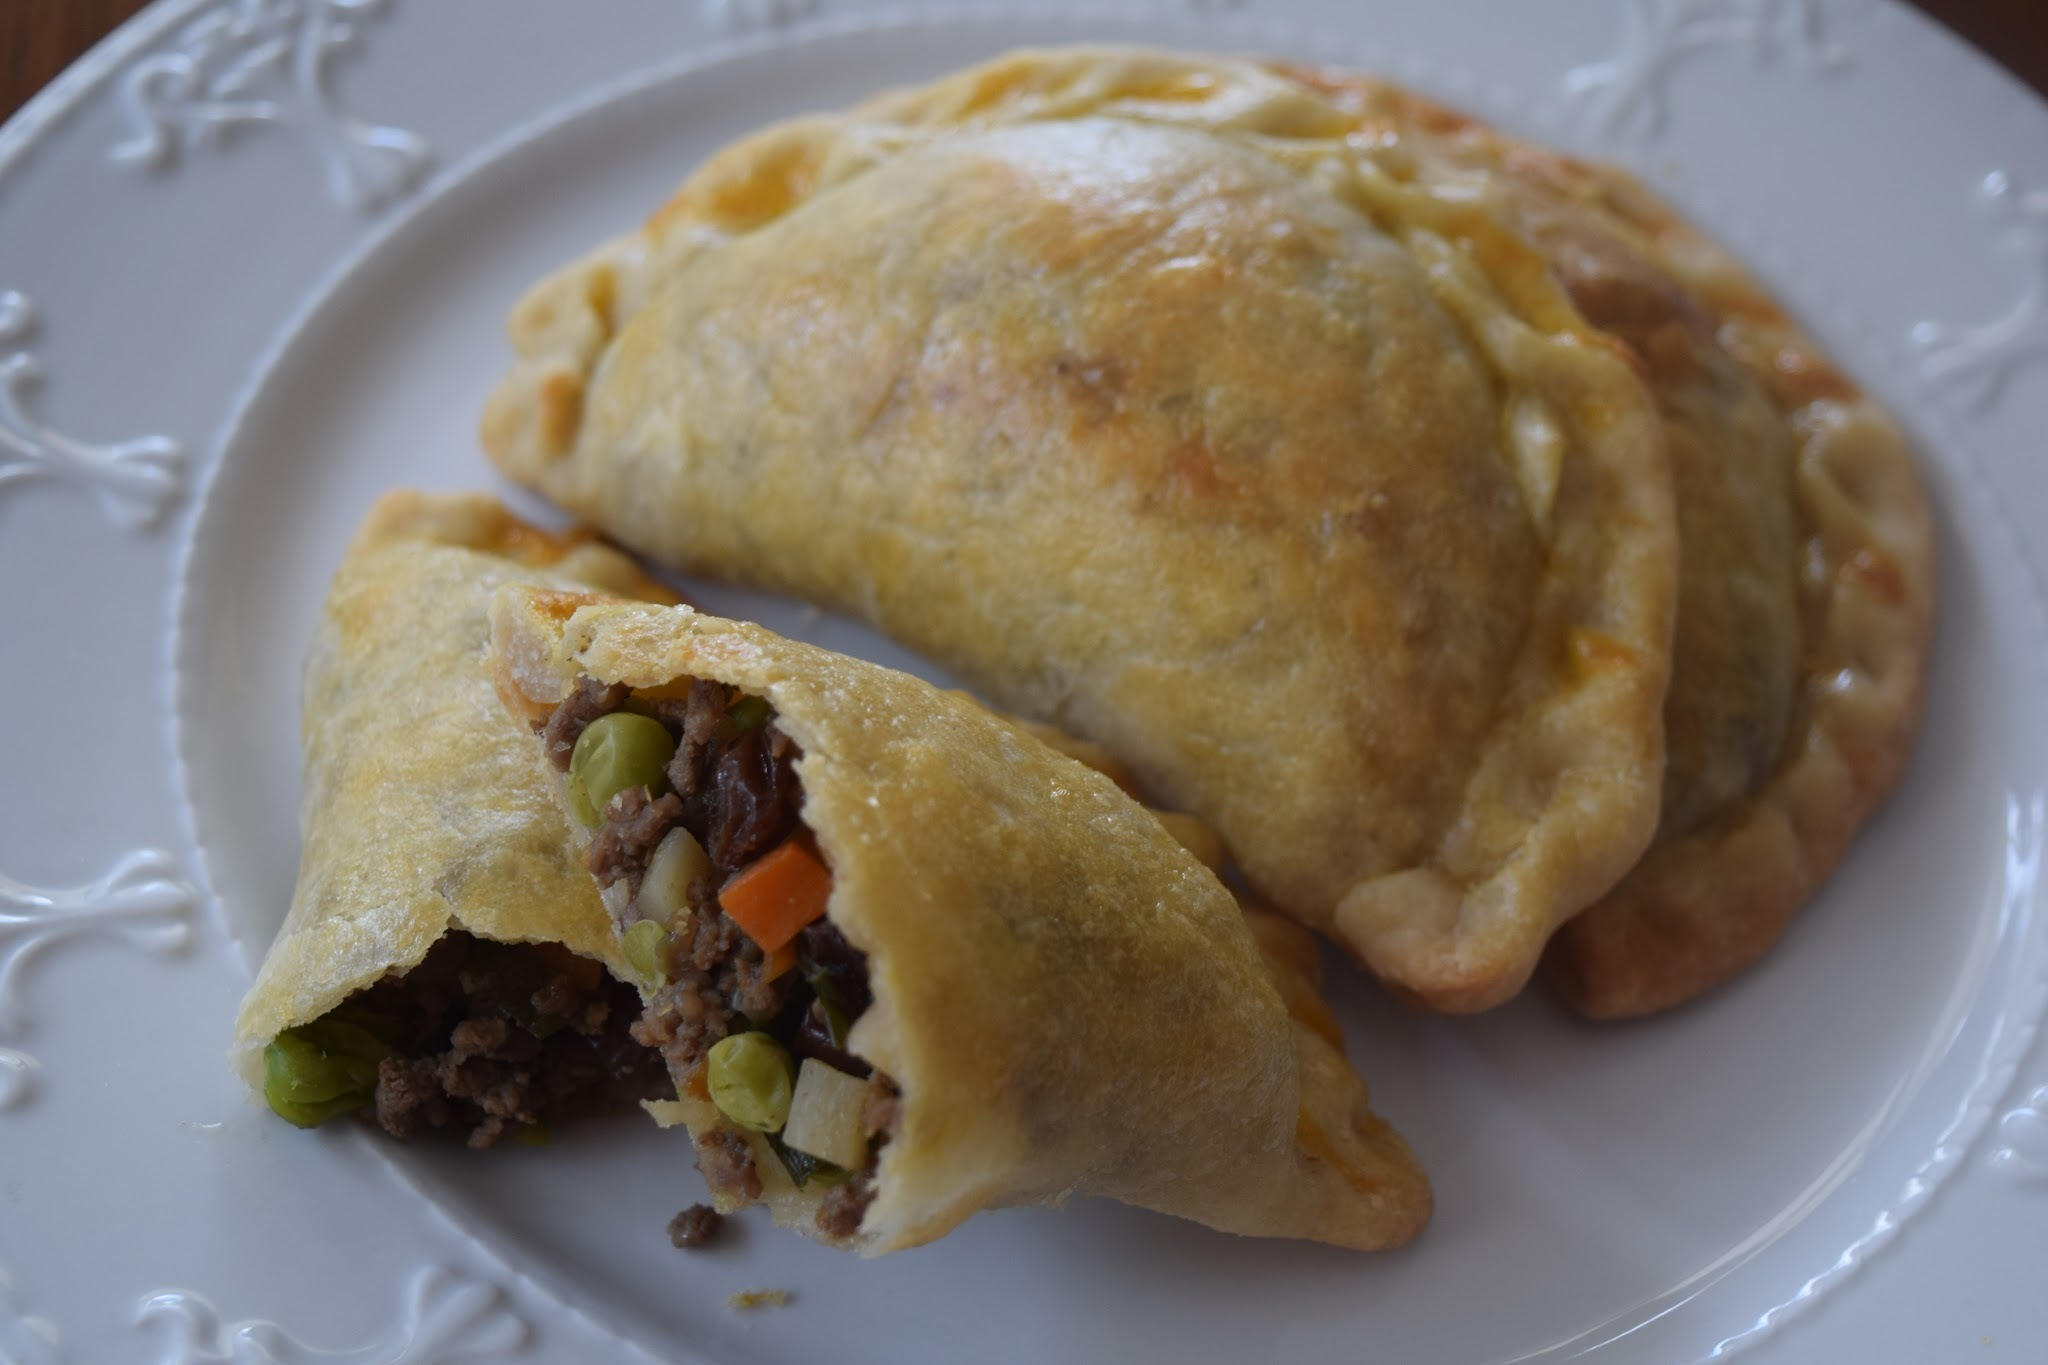 Empanada (Meat and Vegetable Turnover)